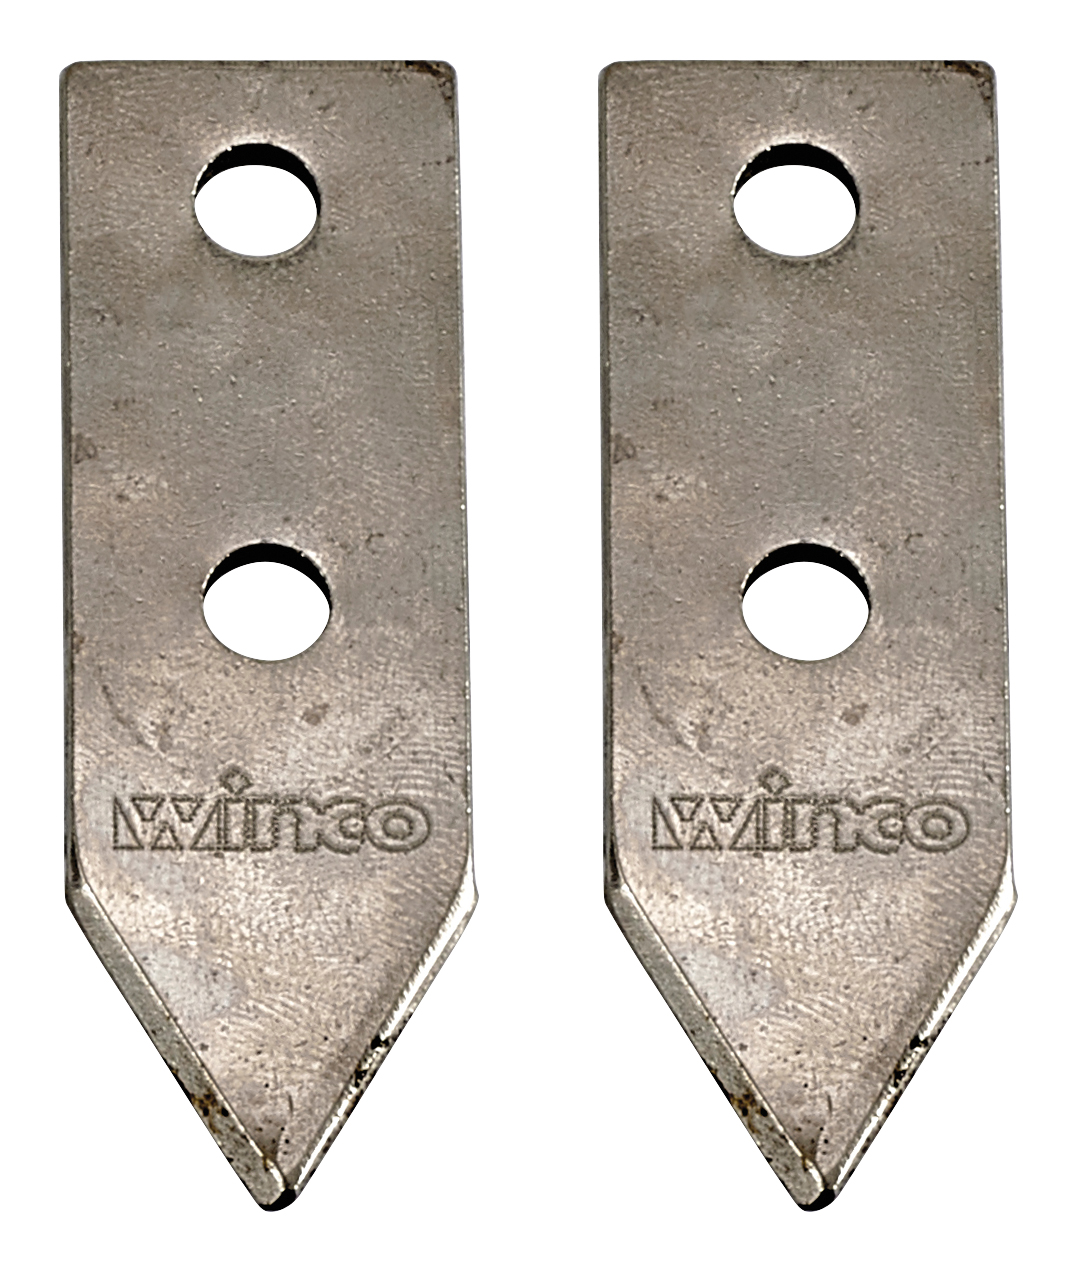 Winco CO-1B commercial manual can openers